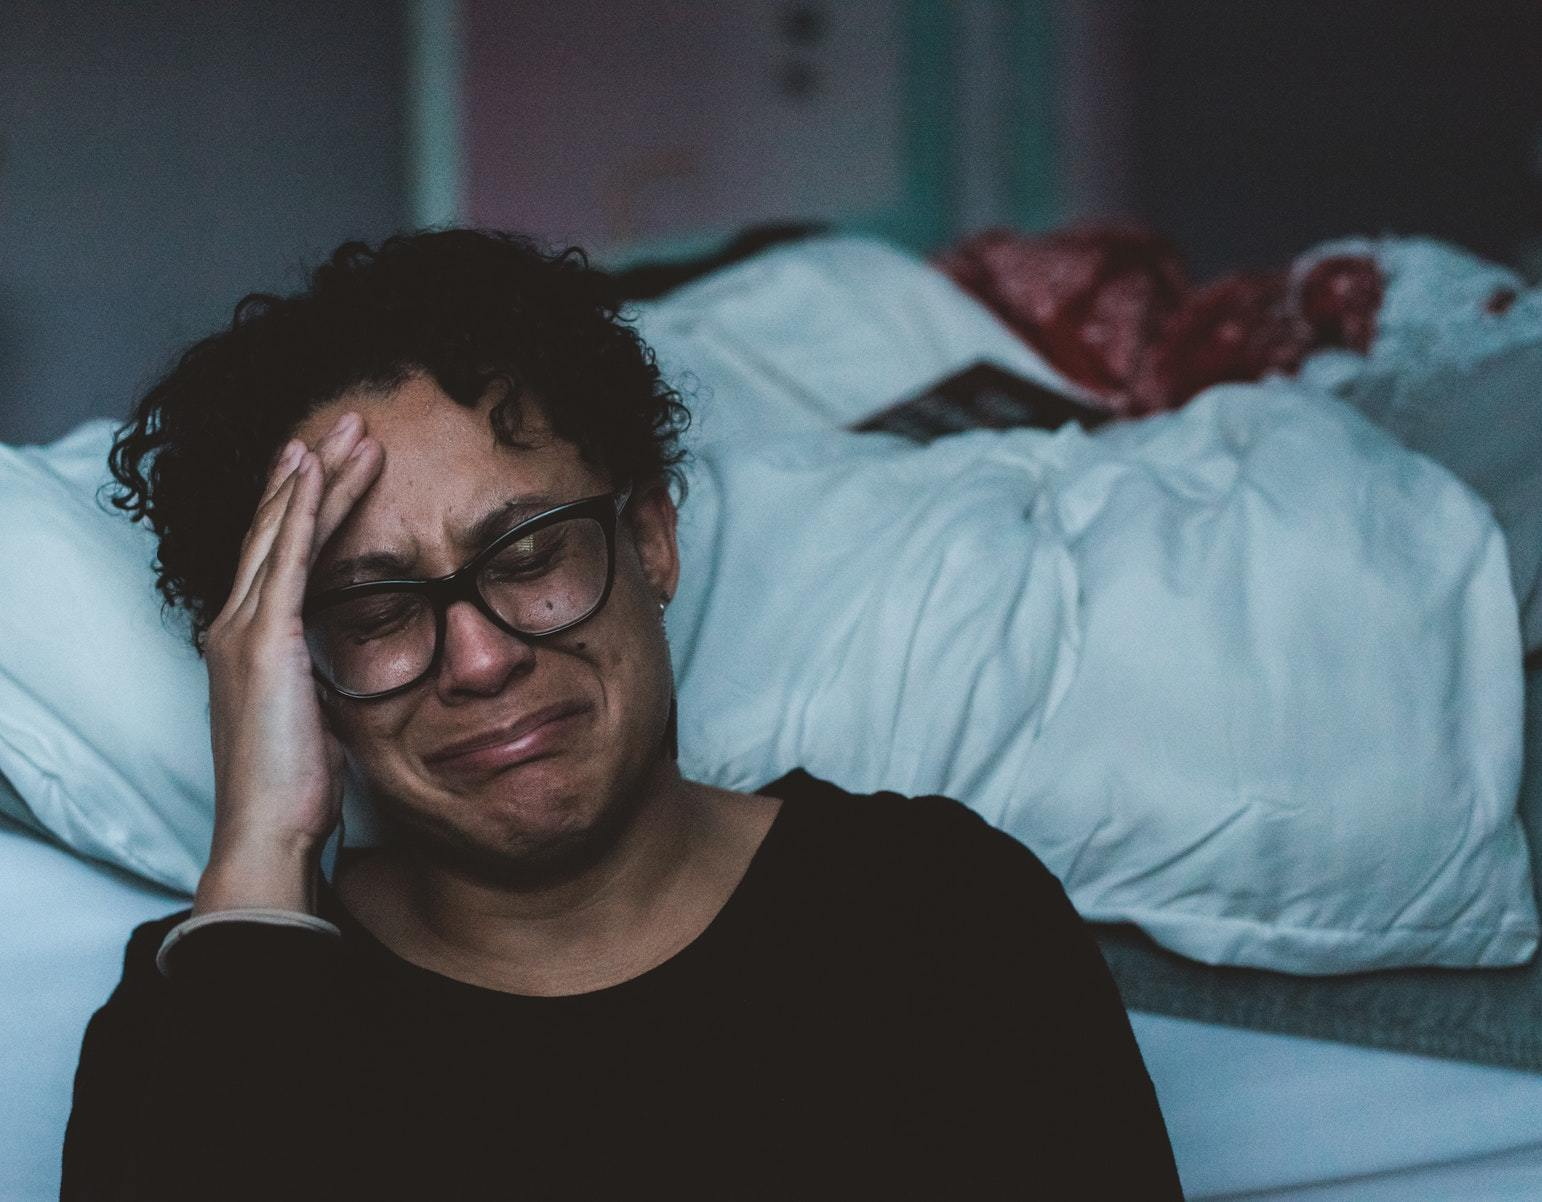 30 year old african / asian woman leaning against a bed and crying